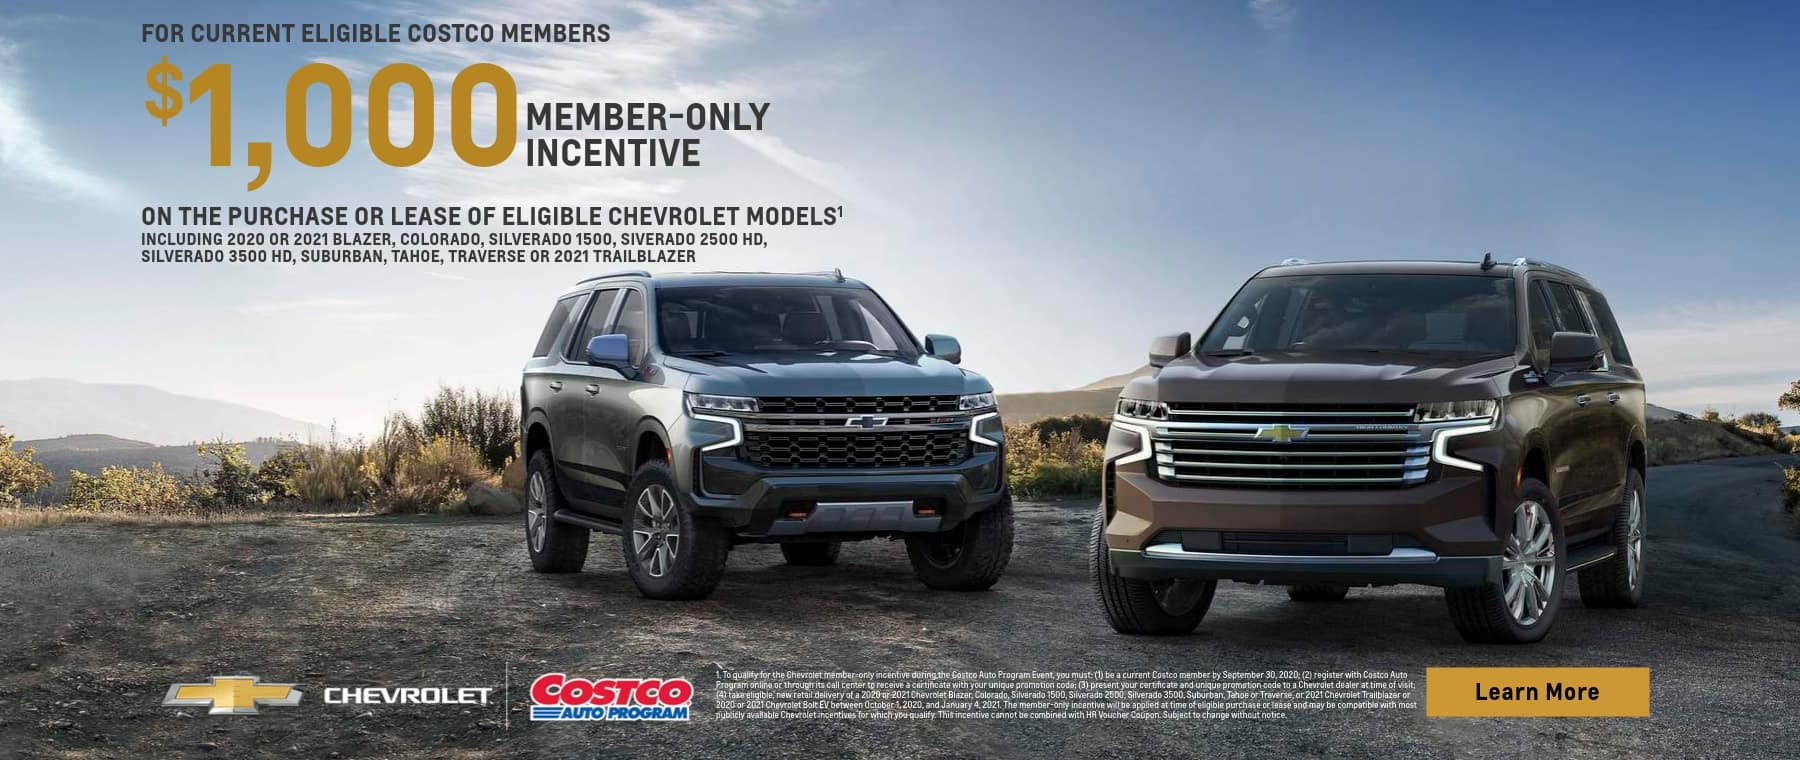 New Chevy Tahoe & Suburban Costco Rebate In Oklahoma